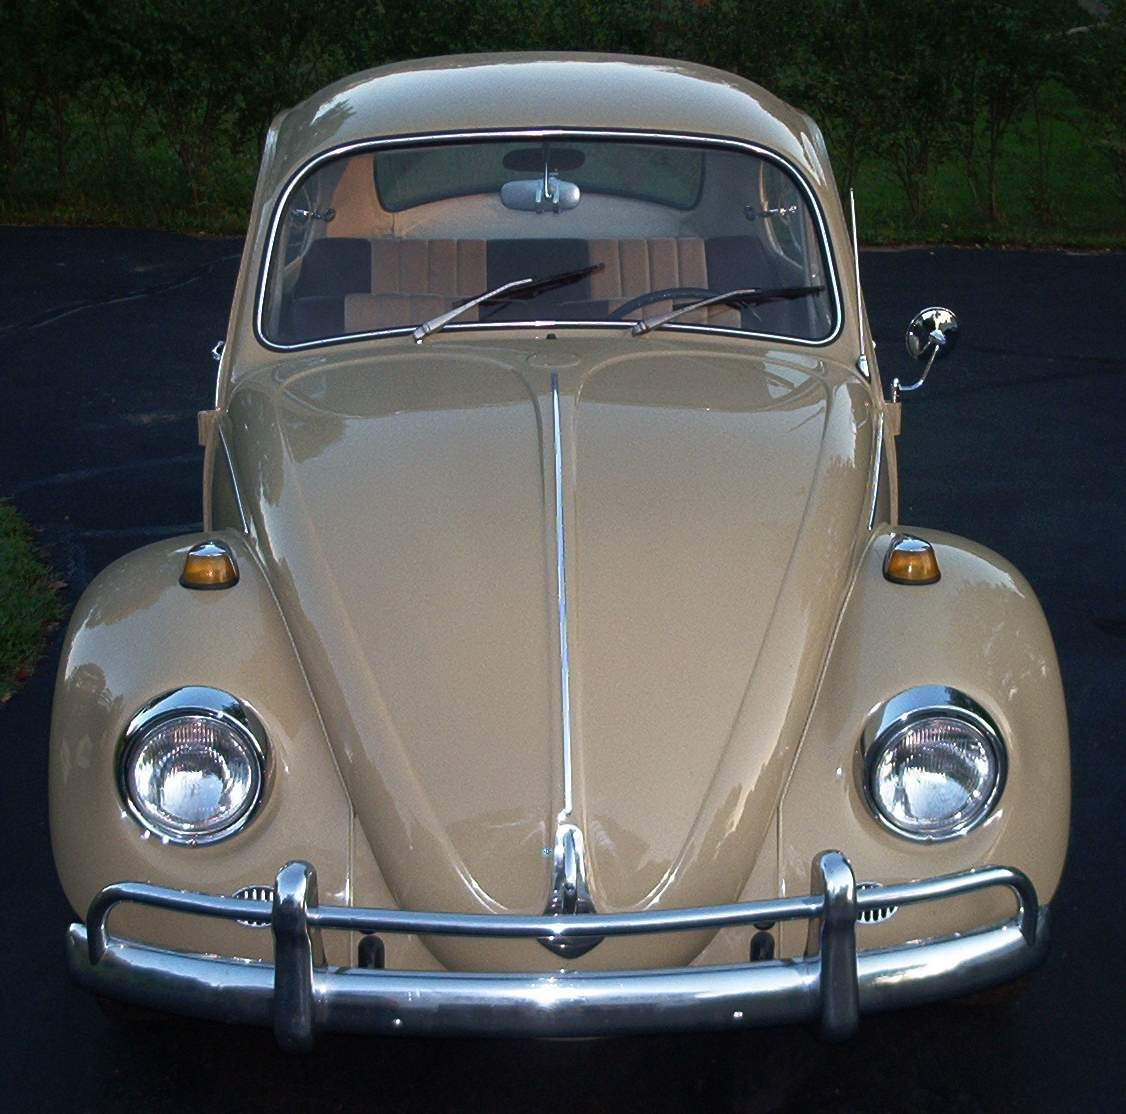 Image May Have Been Reduced In Size Click Image To View Fullscreen Vintage Vw Volkswagen Cc Volkswagen